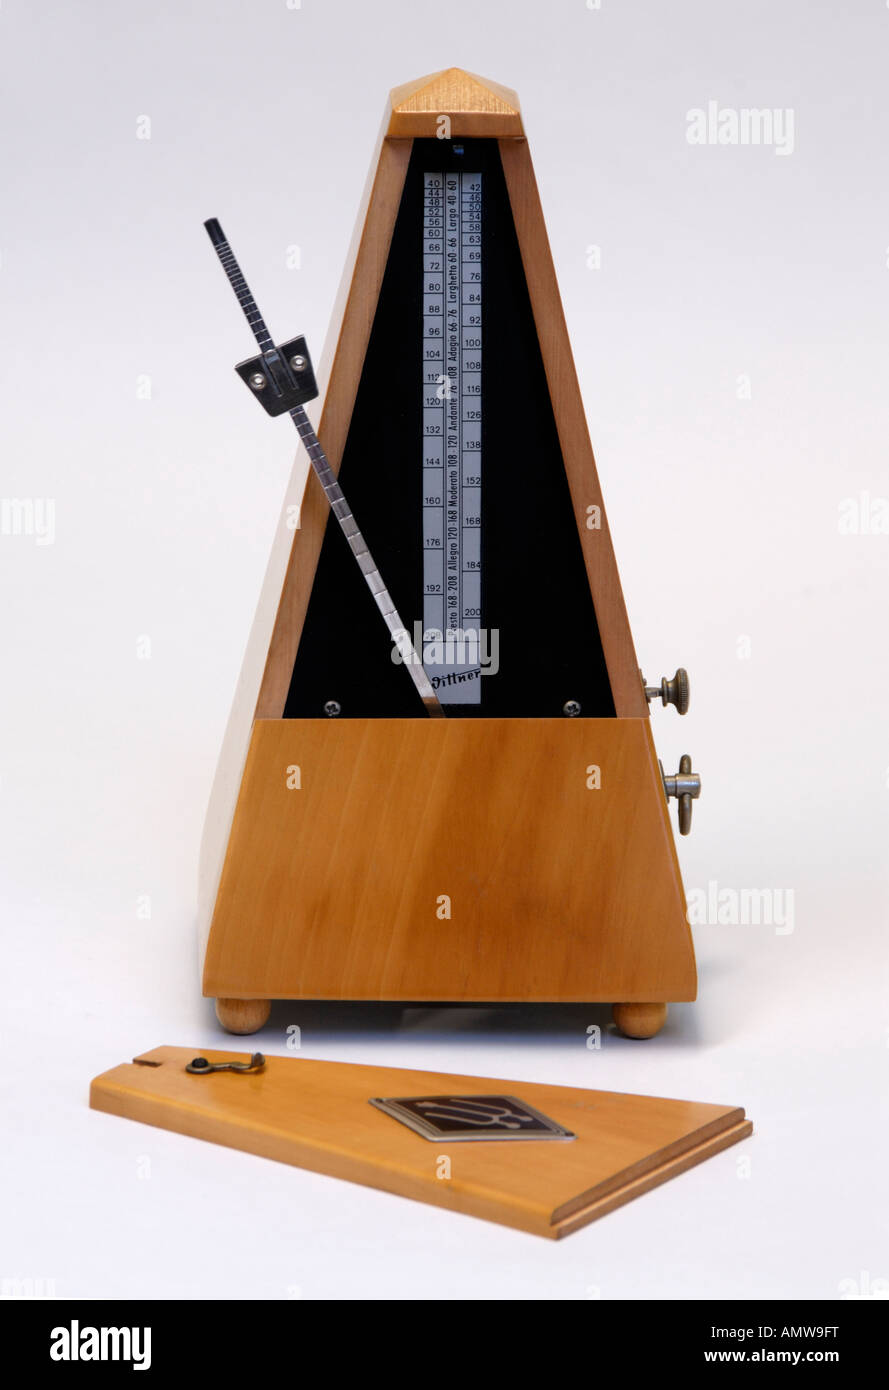 Wittner beechwood clockwork metronome with cover removed. Made in Germany . - Stock Image